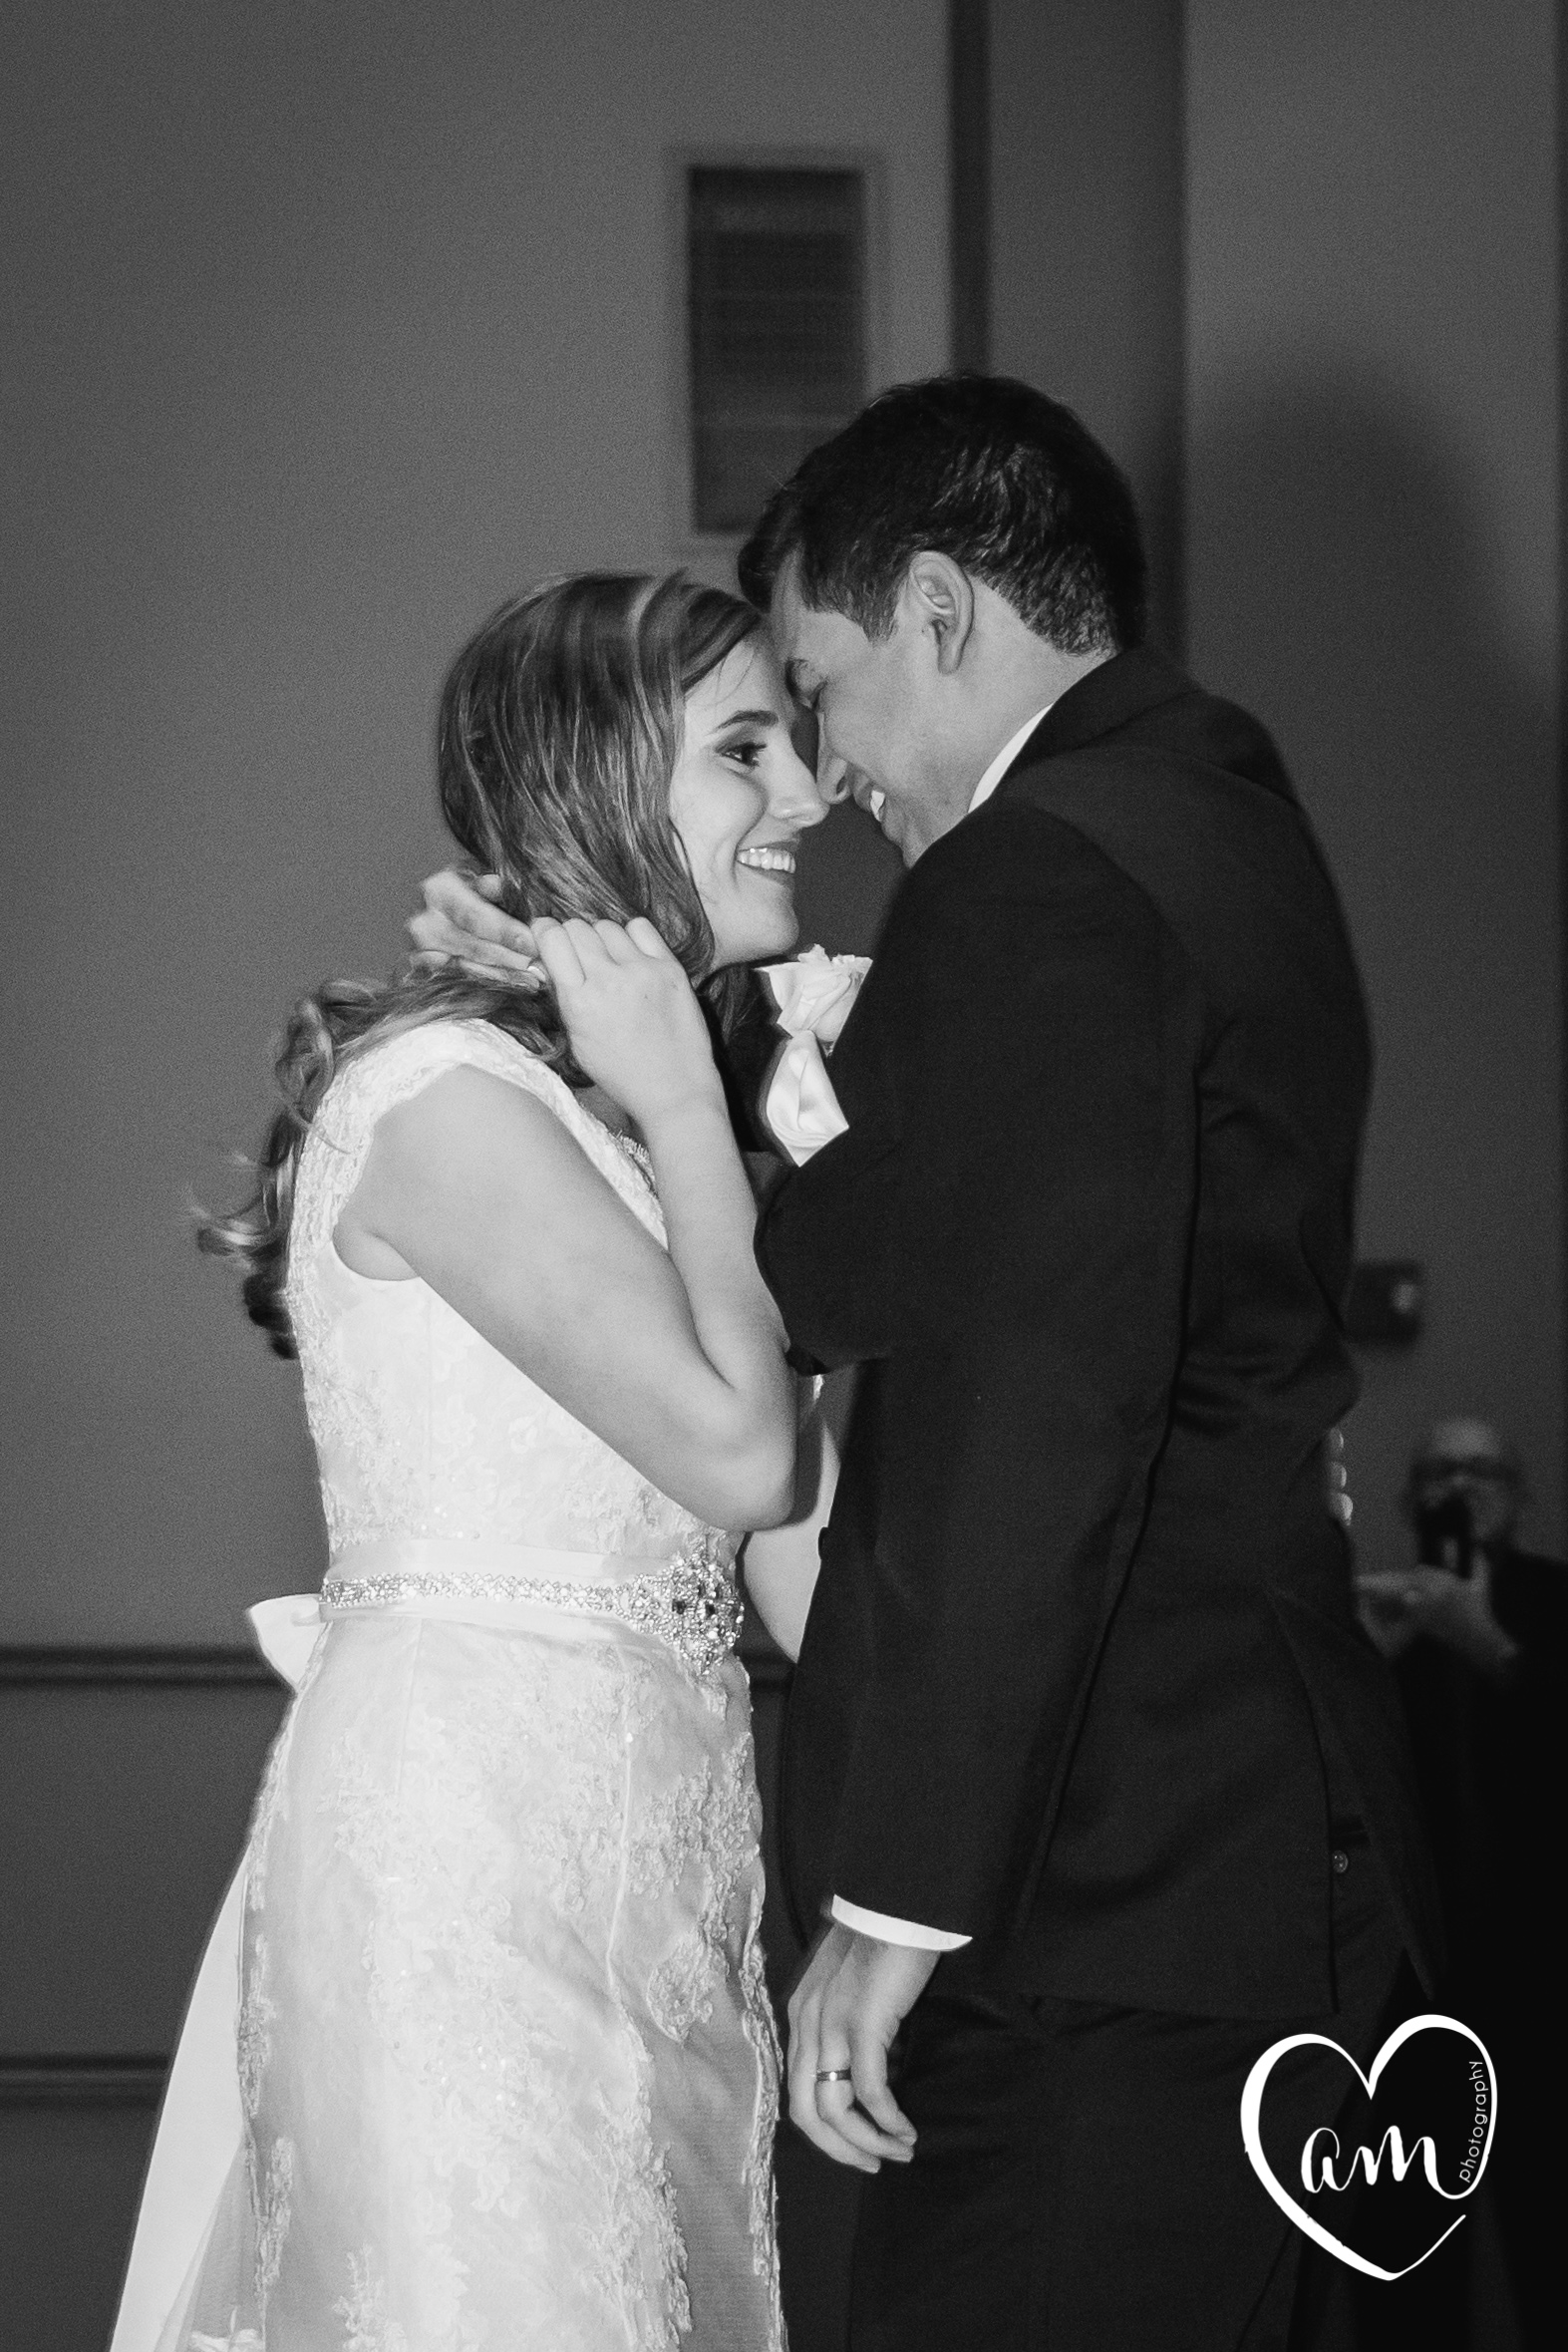 First Dance. Photo by Amanda Mejias Photography: Destination Wedding Photographer.